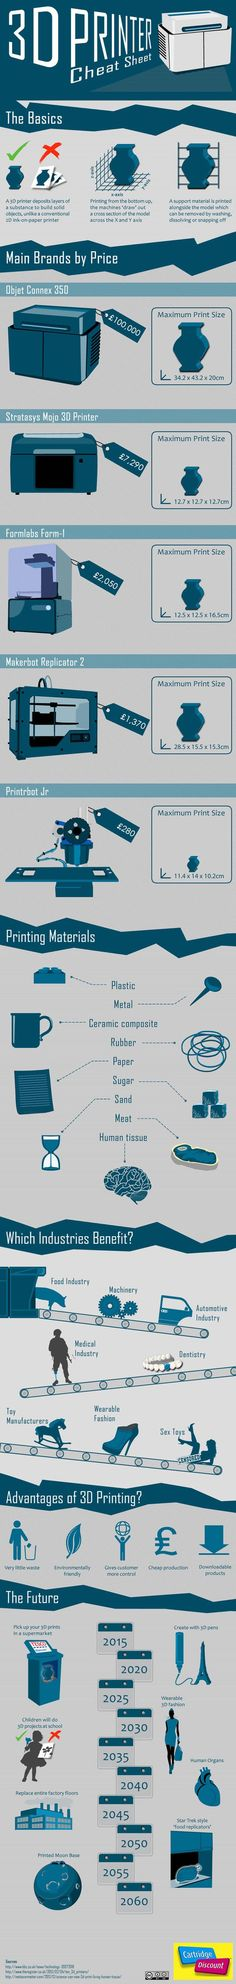 3D Printing 101: How It Works & Potential Applications #infographic via @bitrebels